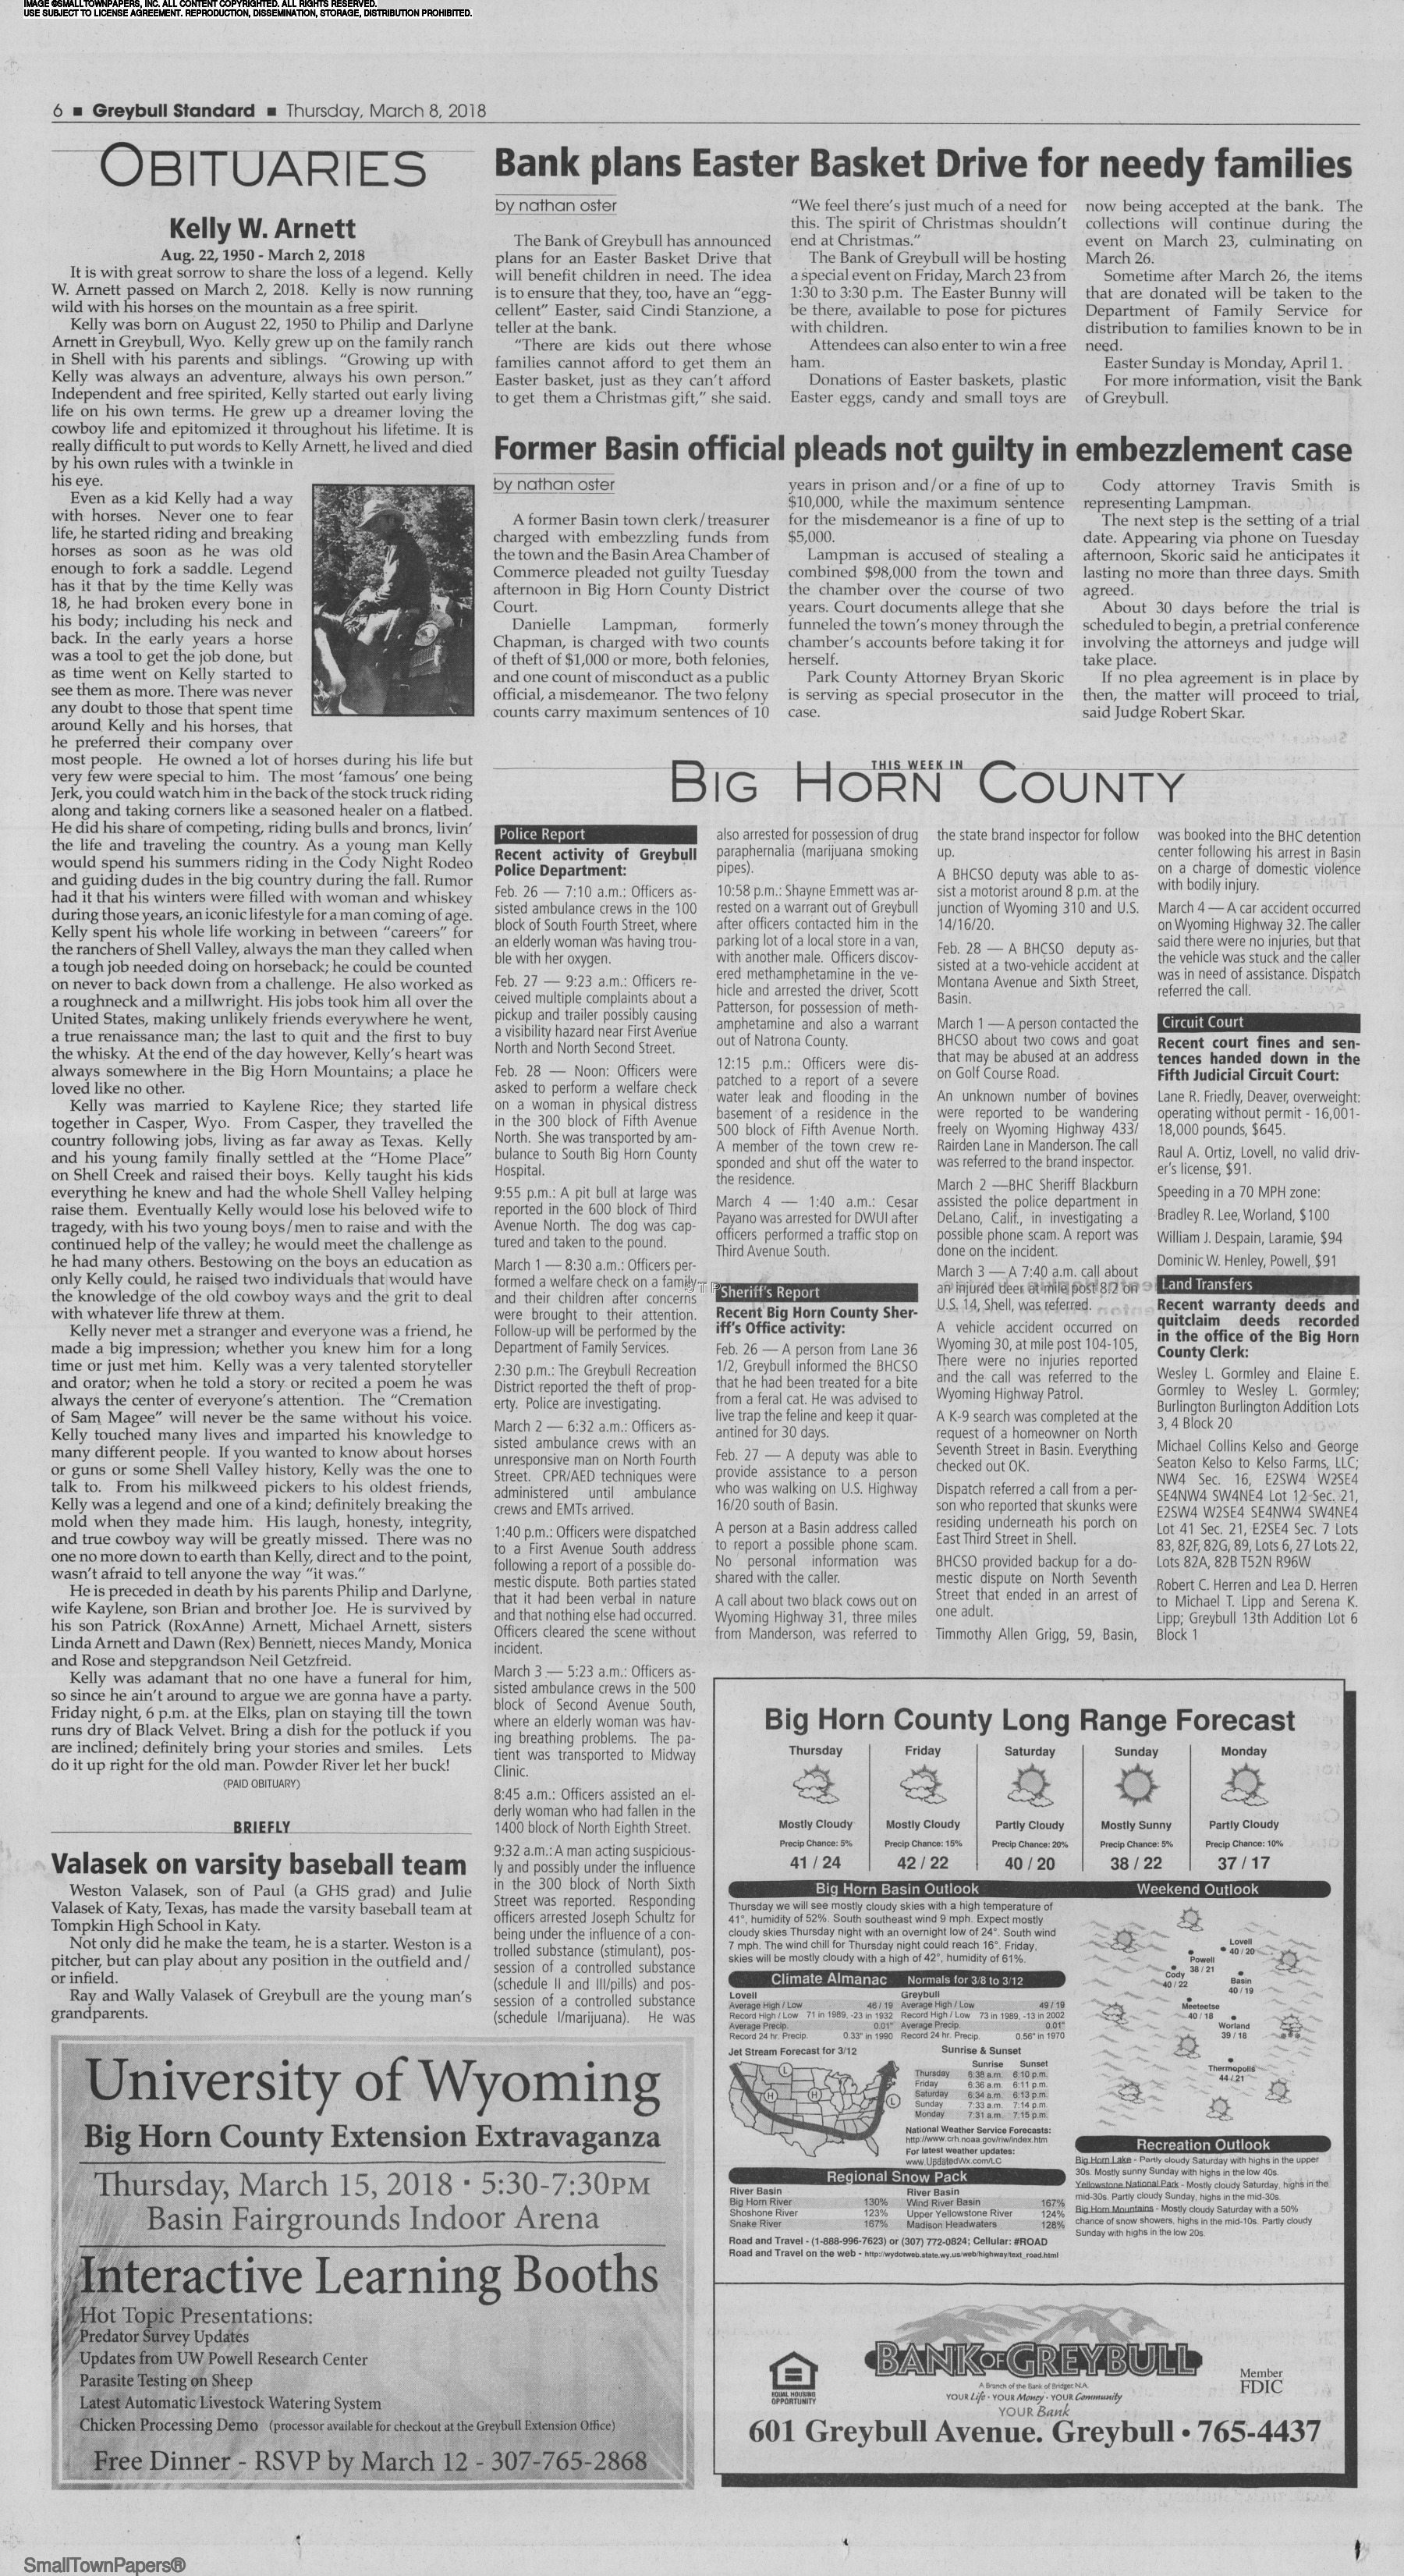 Greybull Standard March 8, 2018: Page 6